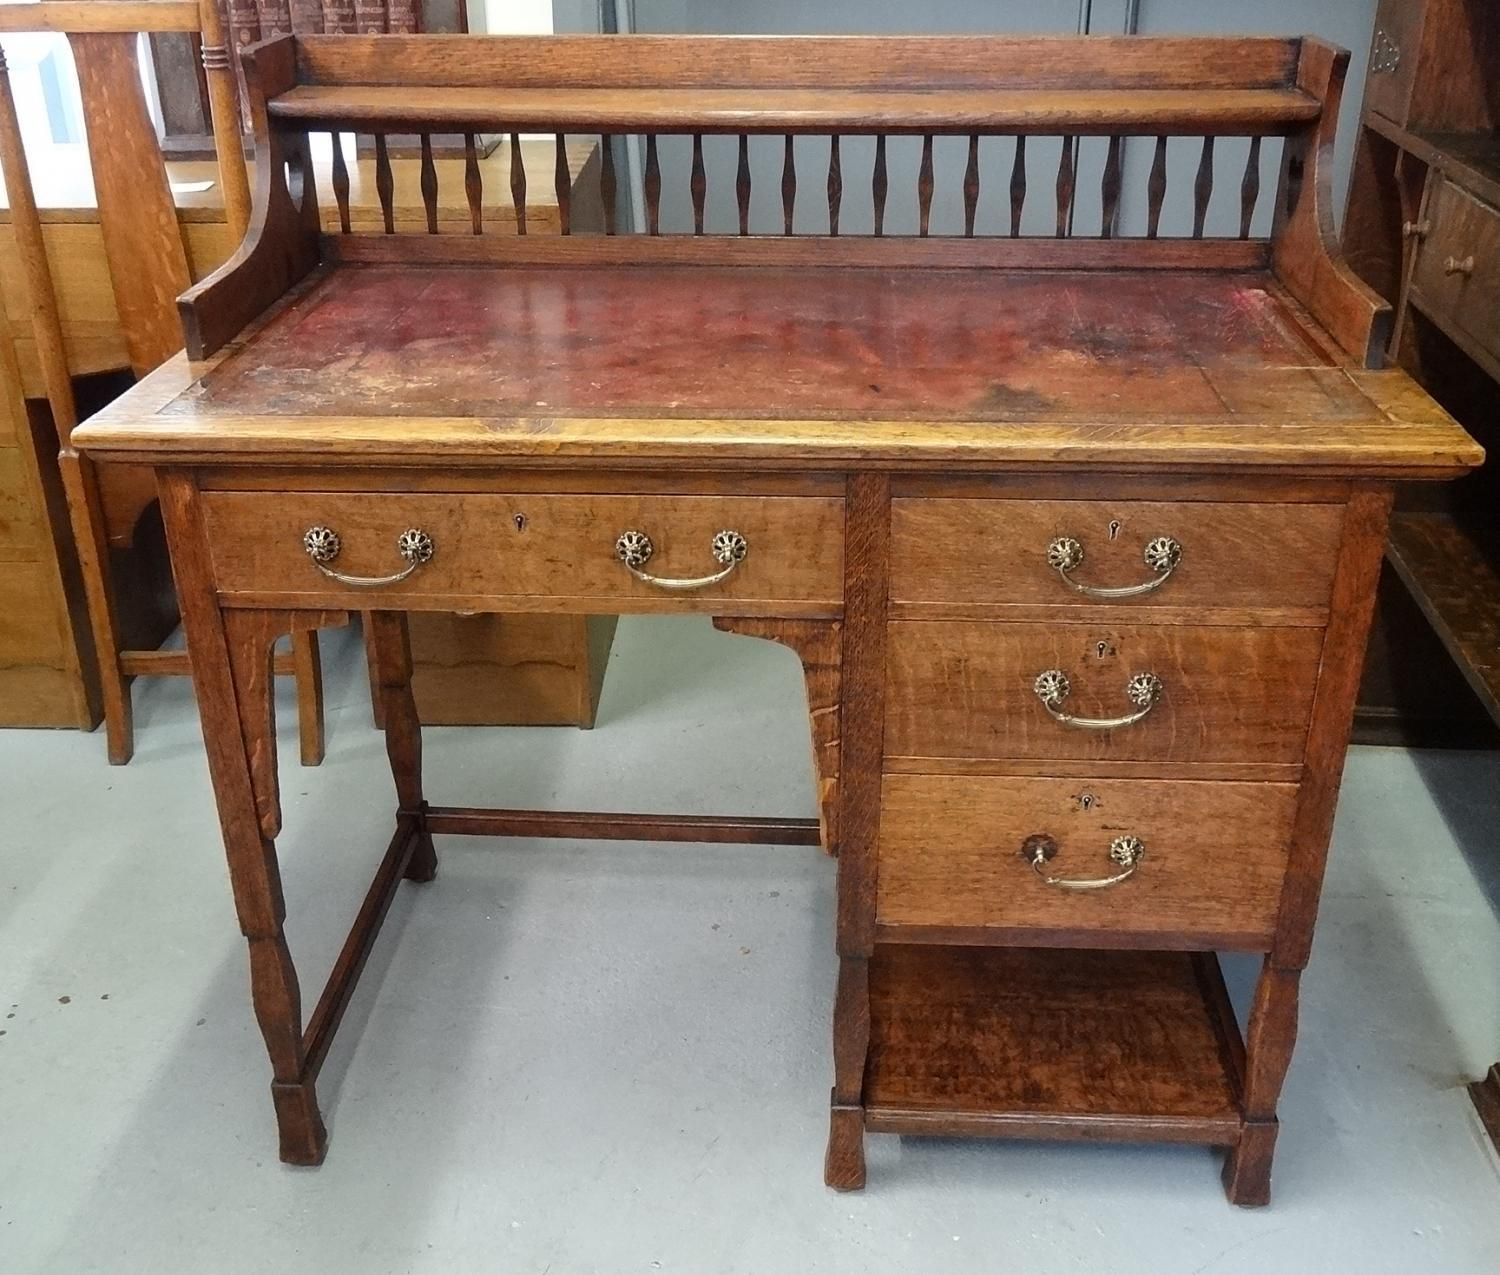 Shapland & Petter oak desk